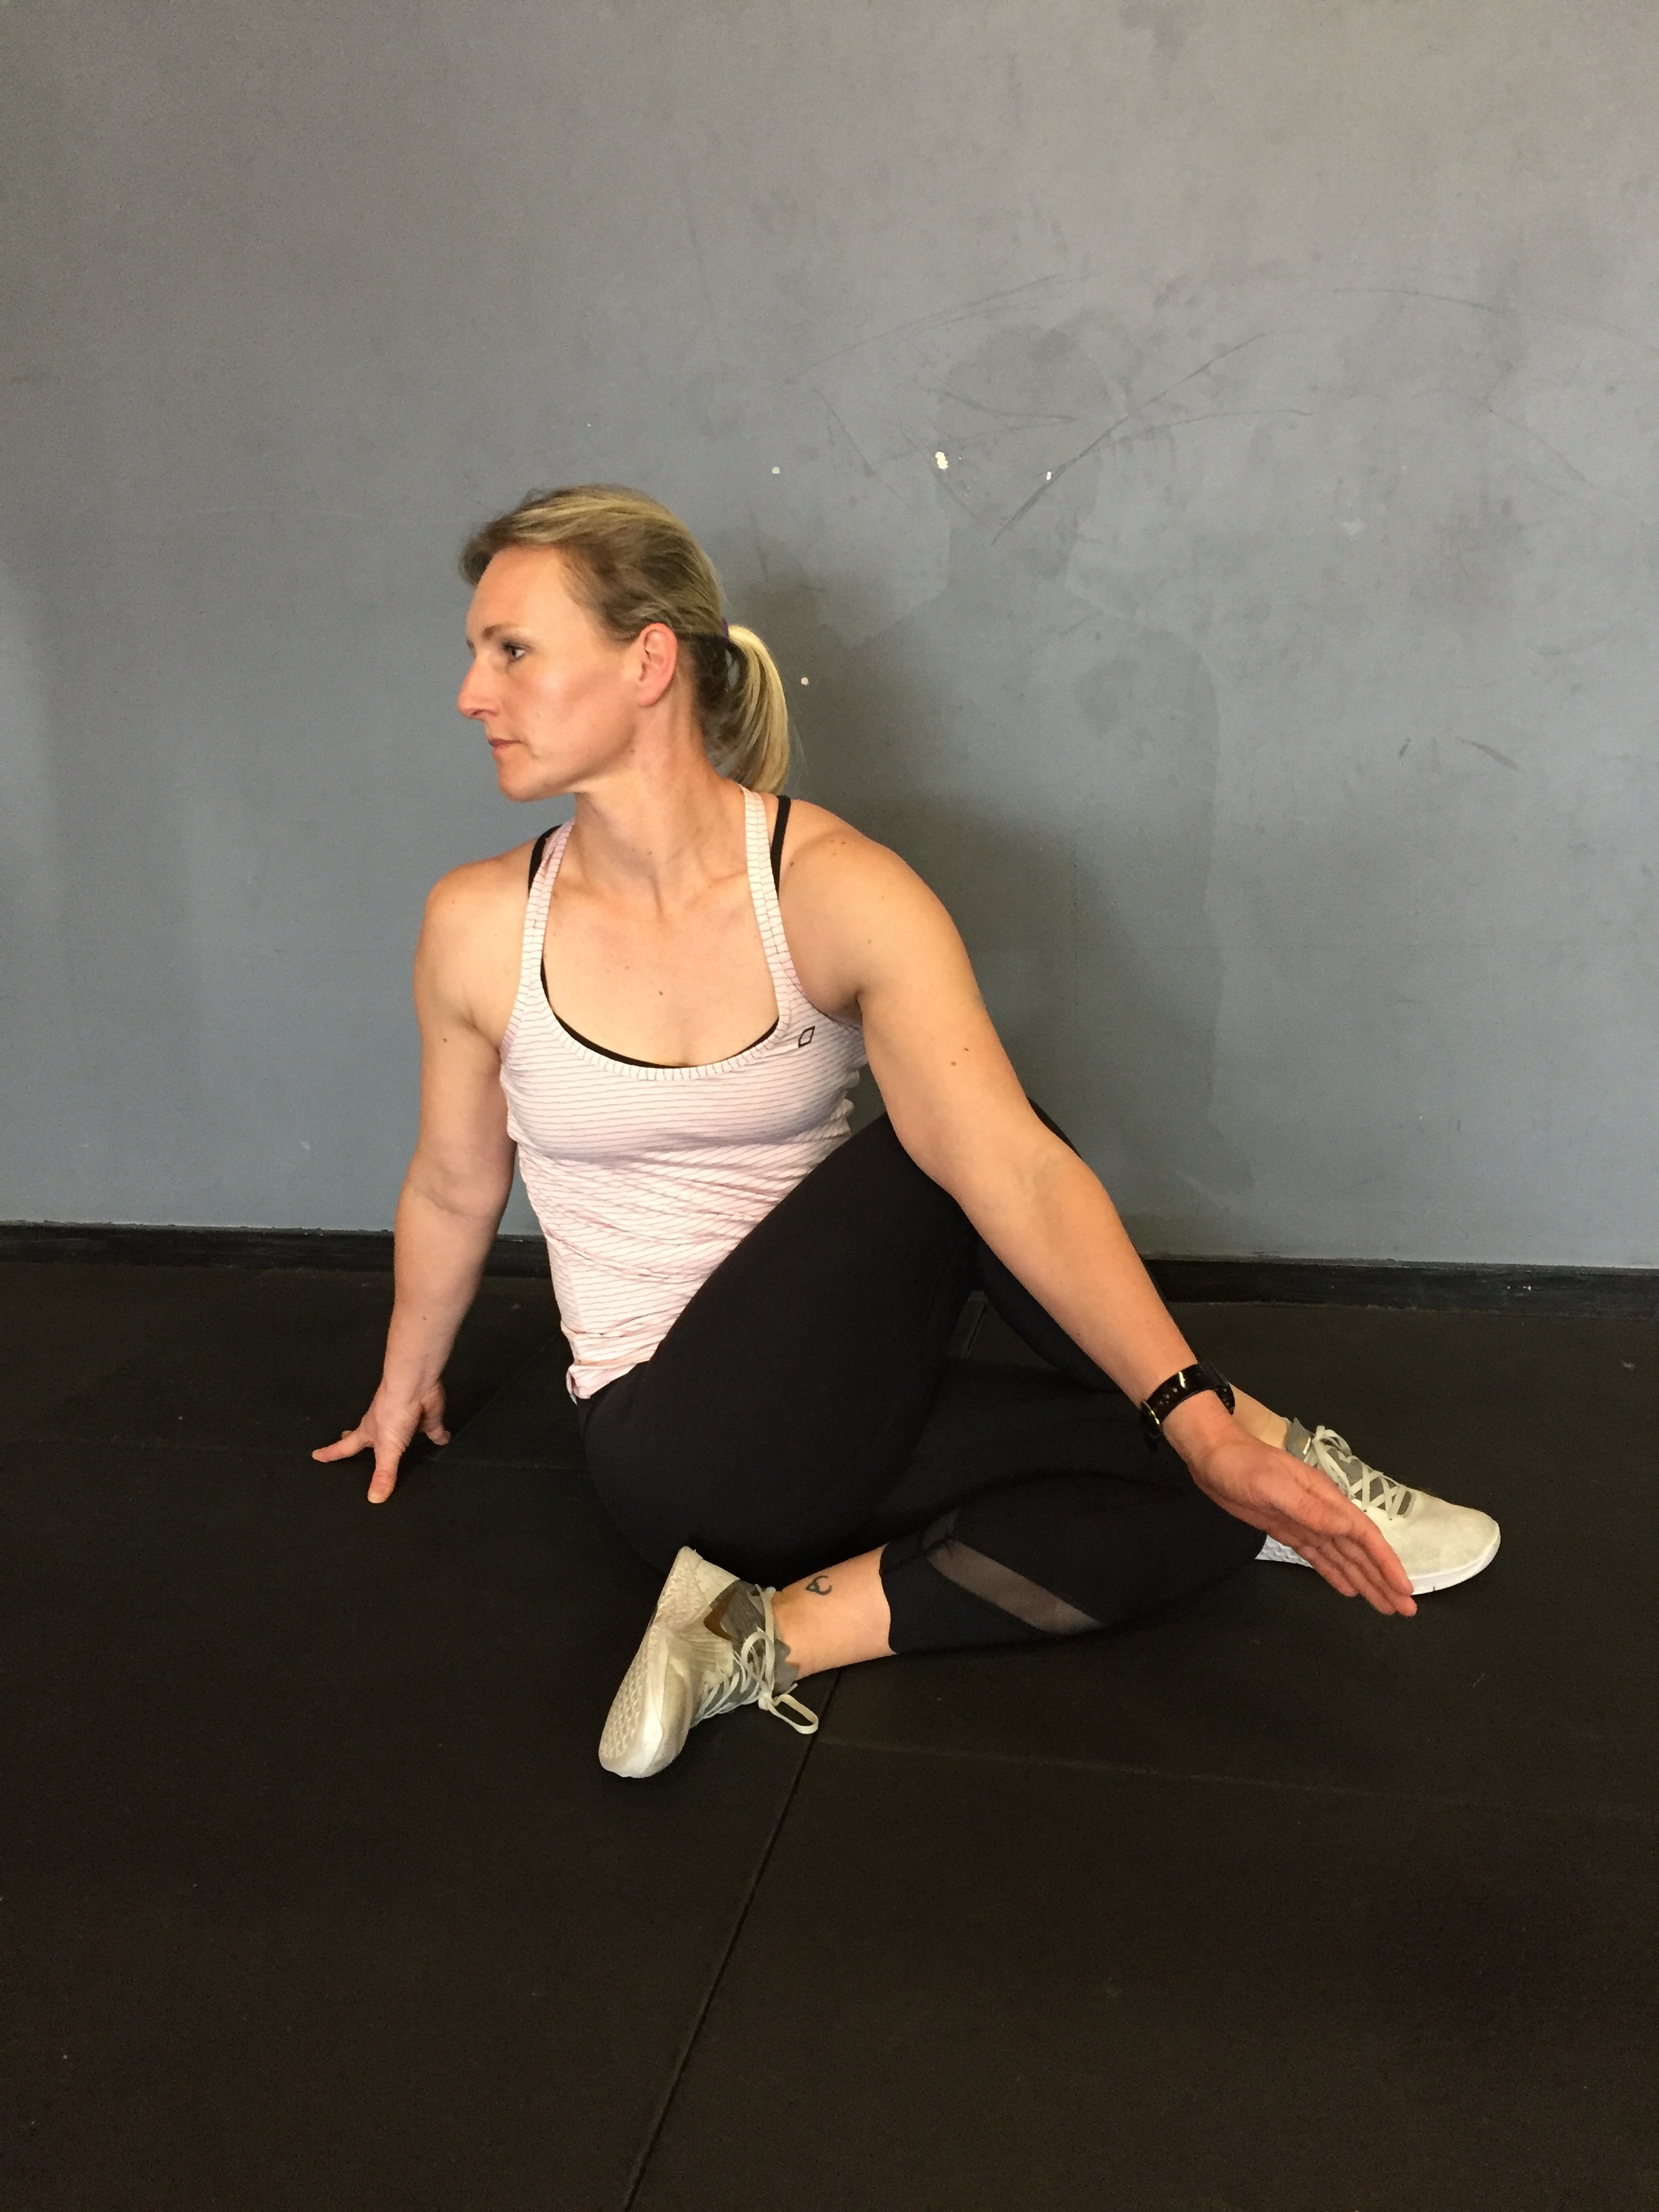 Seated T-spine rotation with both legs bent